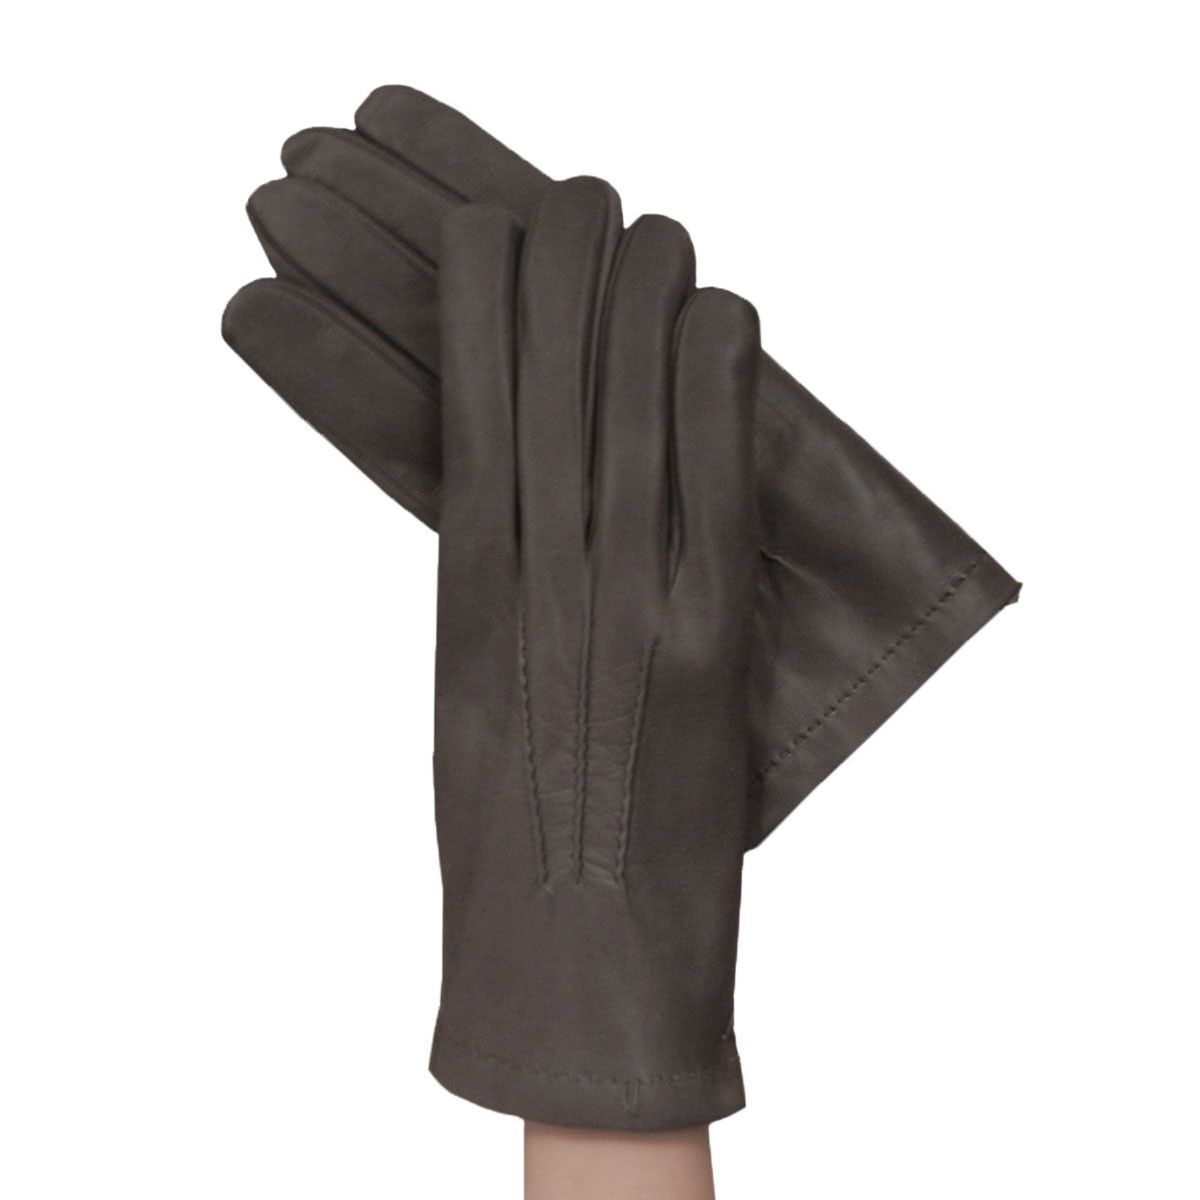 Mens leather gloves grey - Gray Men S Leather Gloves Lined In Cashmere